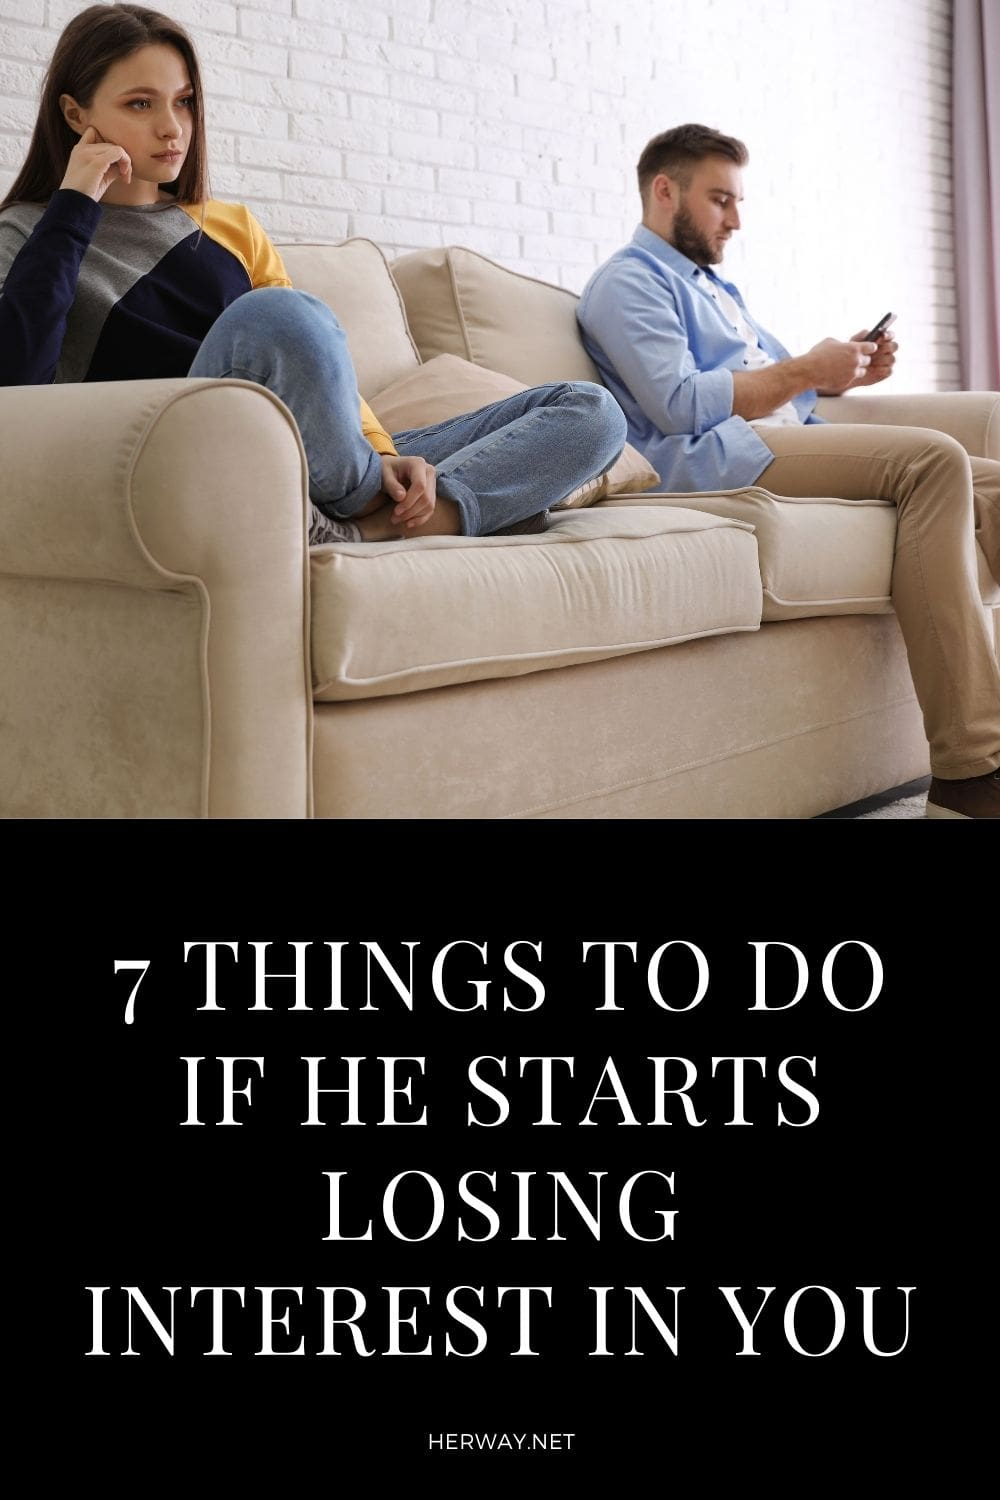 7 Things To Do If He Starts Losing Interest In You